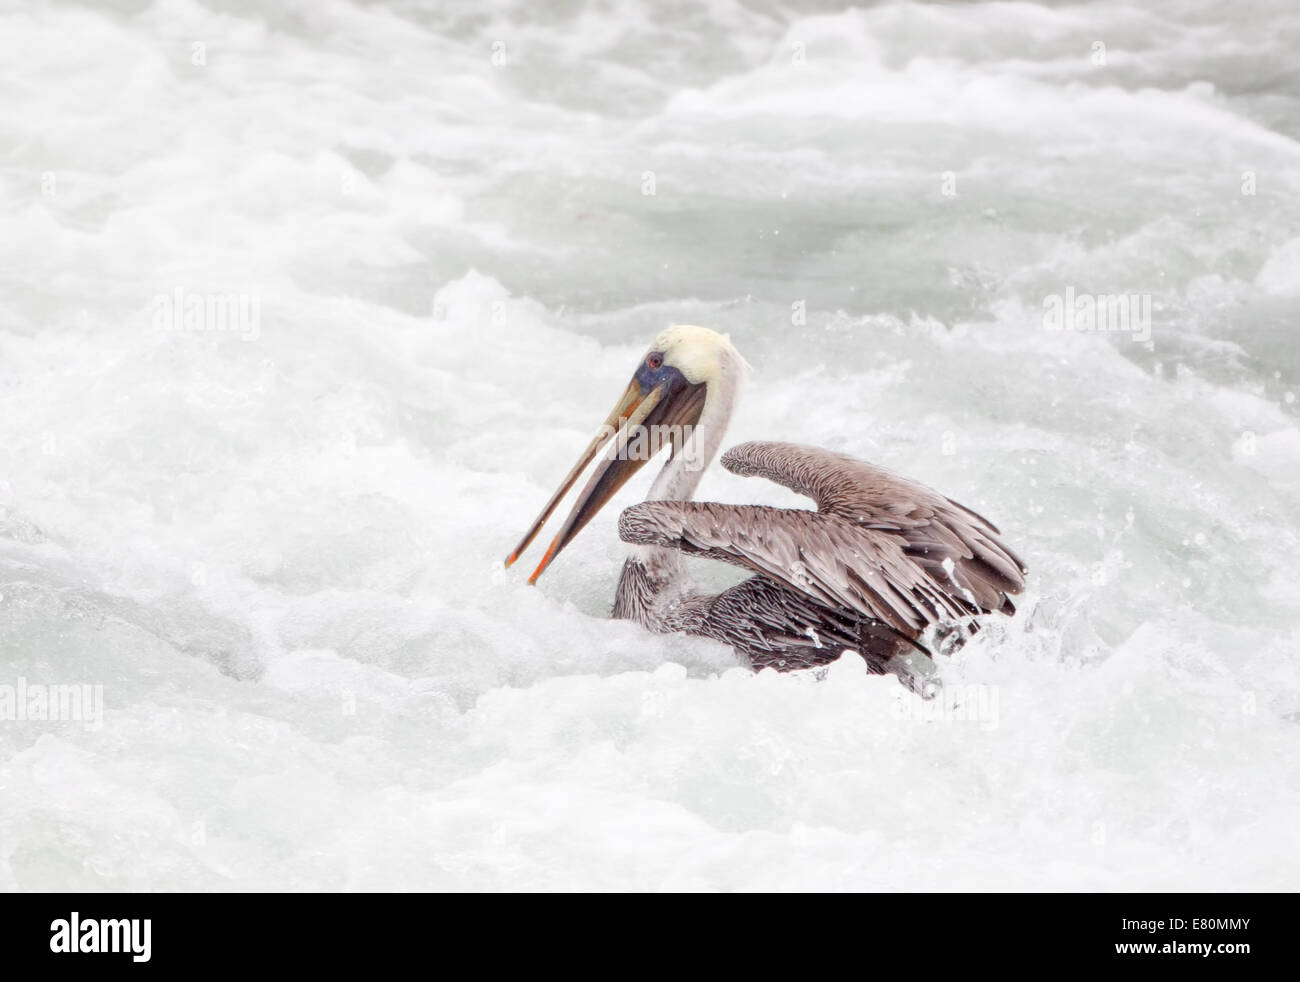 Brown Pelican in White Water of Crashing Wave - Stock Image